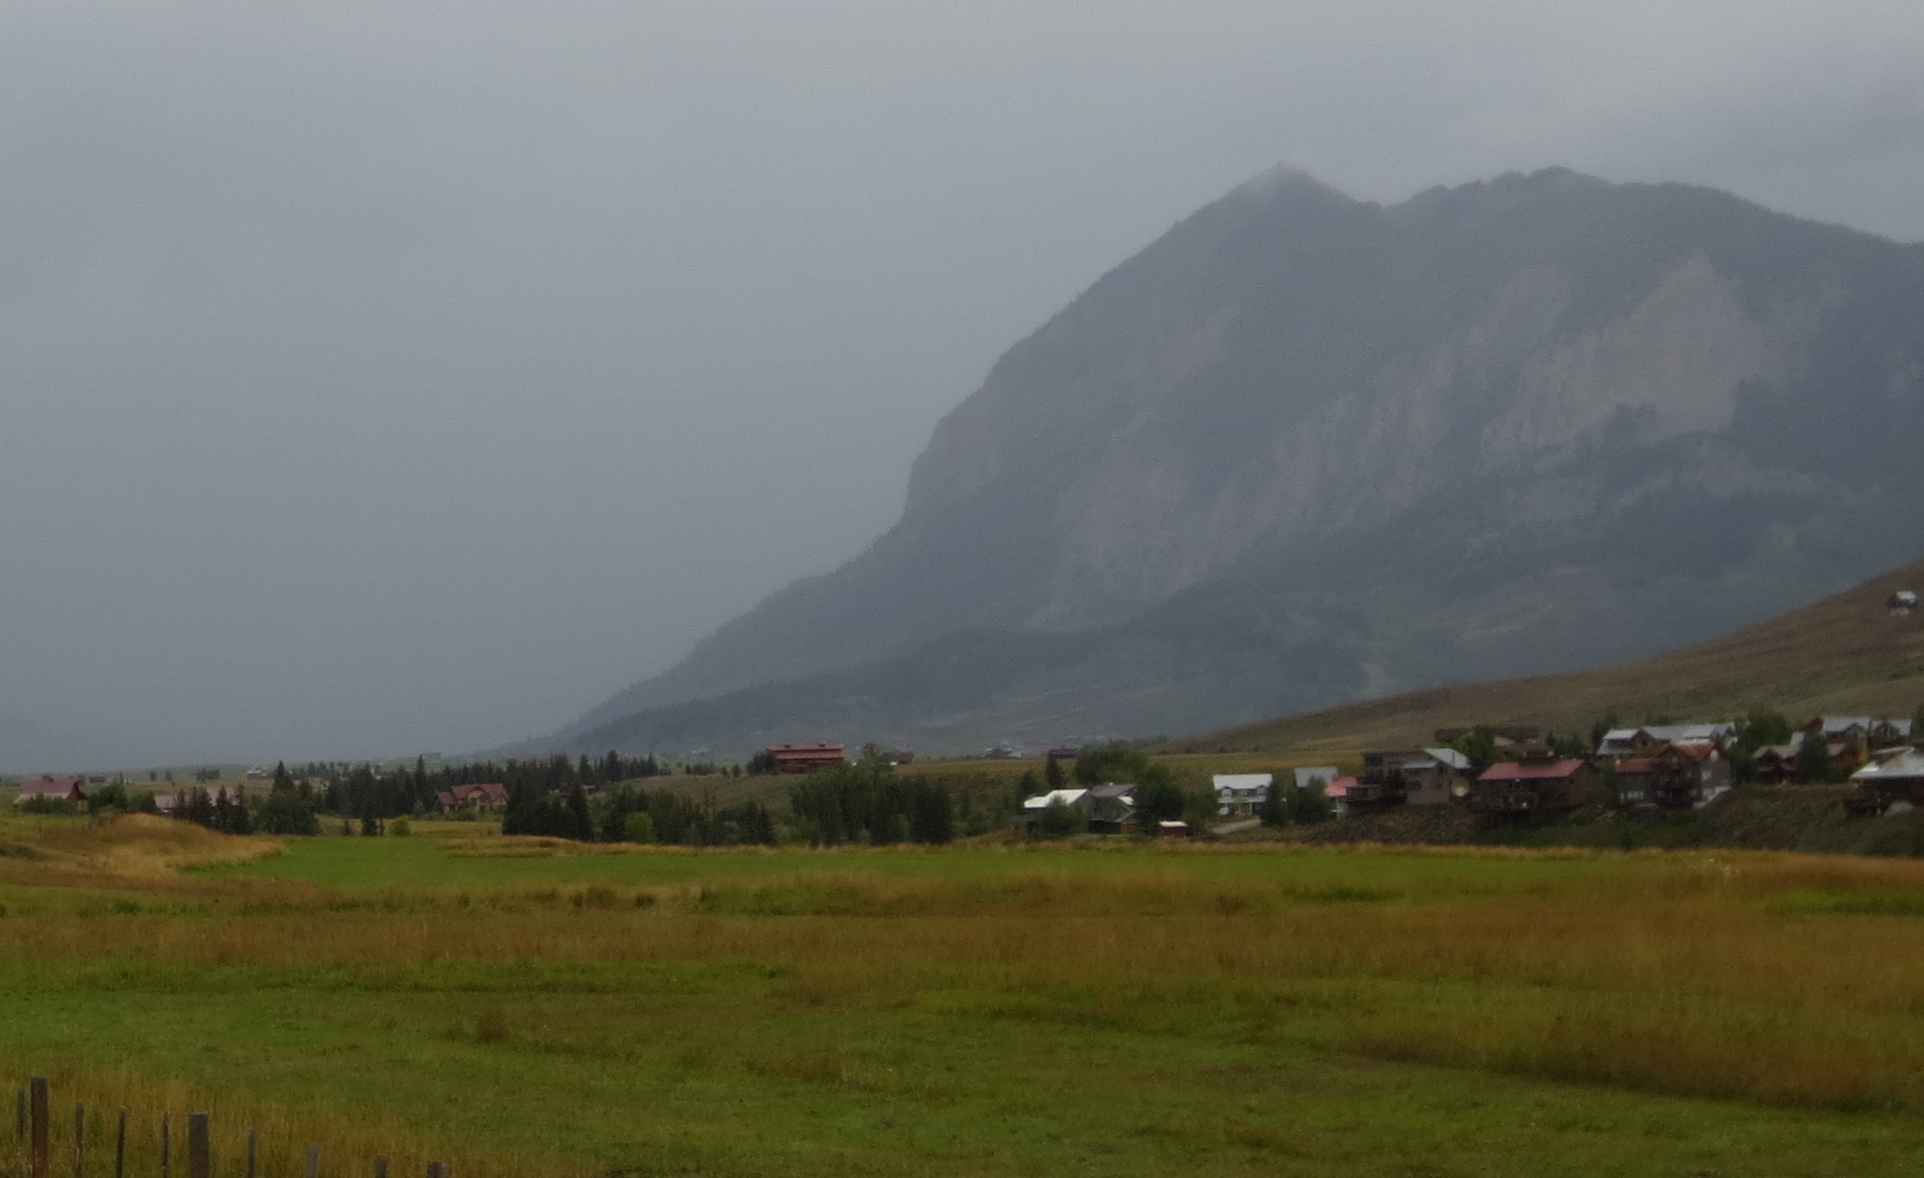 A stormy day on tour, riding into Crested Butte